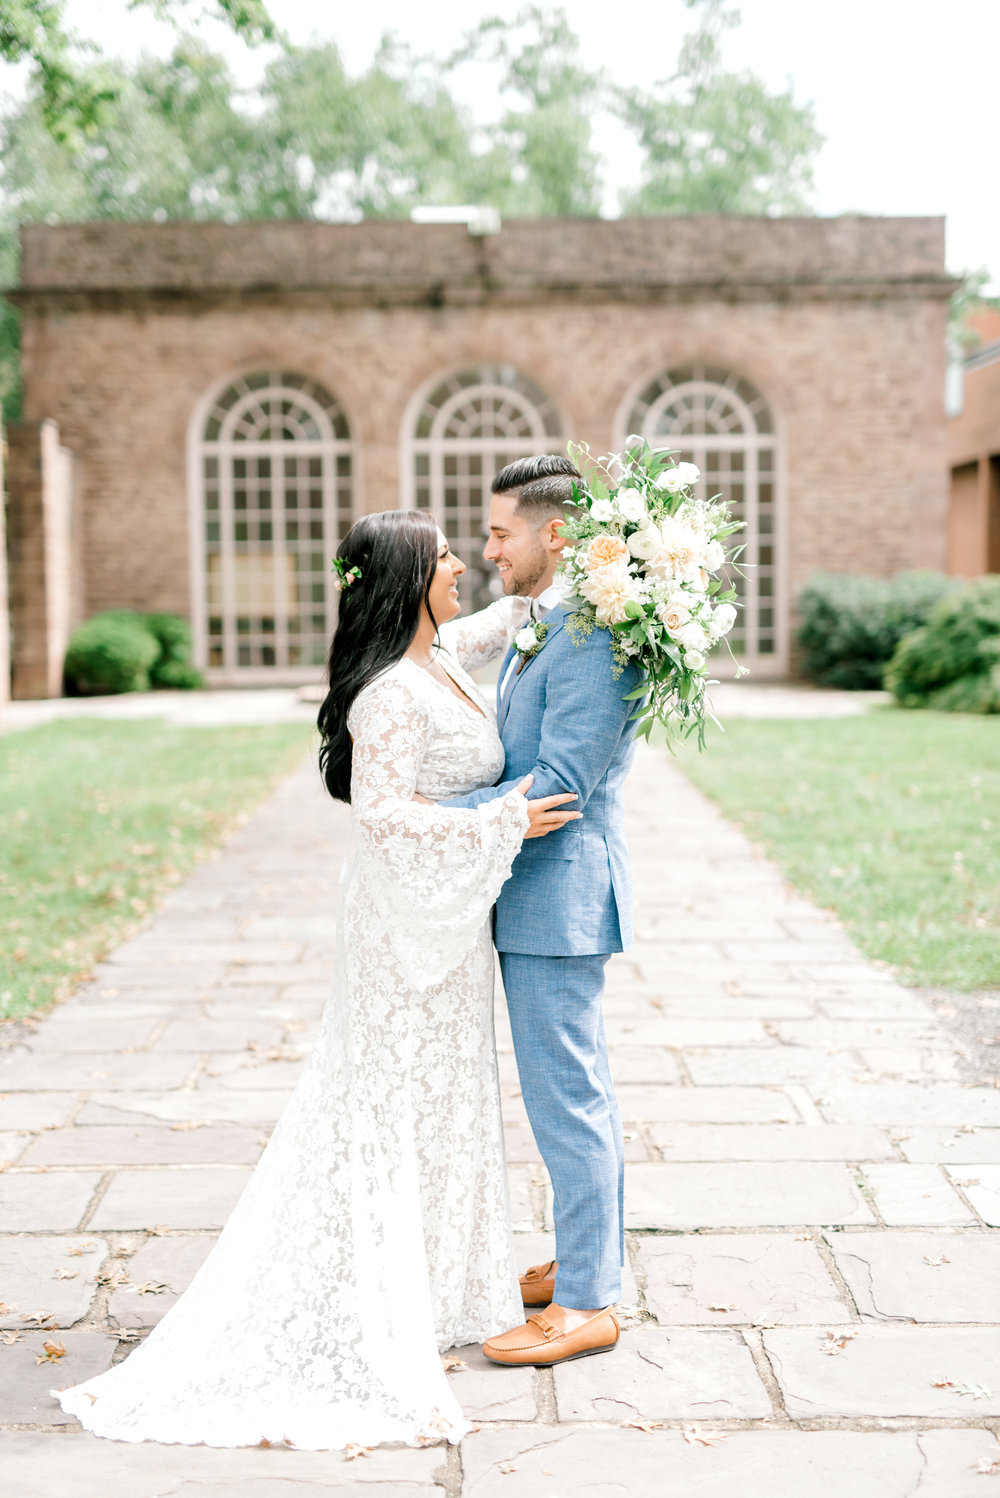 We loved the bright and classic feel of Alicia's lace BHLDN gown matched with Mike's light blue suit. Never has a bright boho chic Tyler Gardens wedding in Bucks County been so timeless.